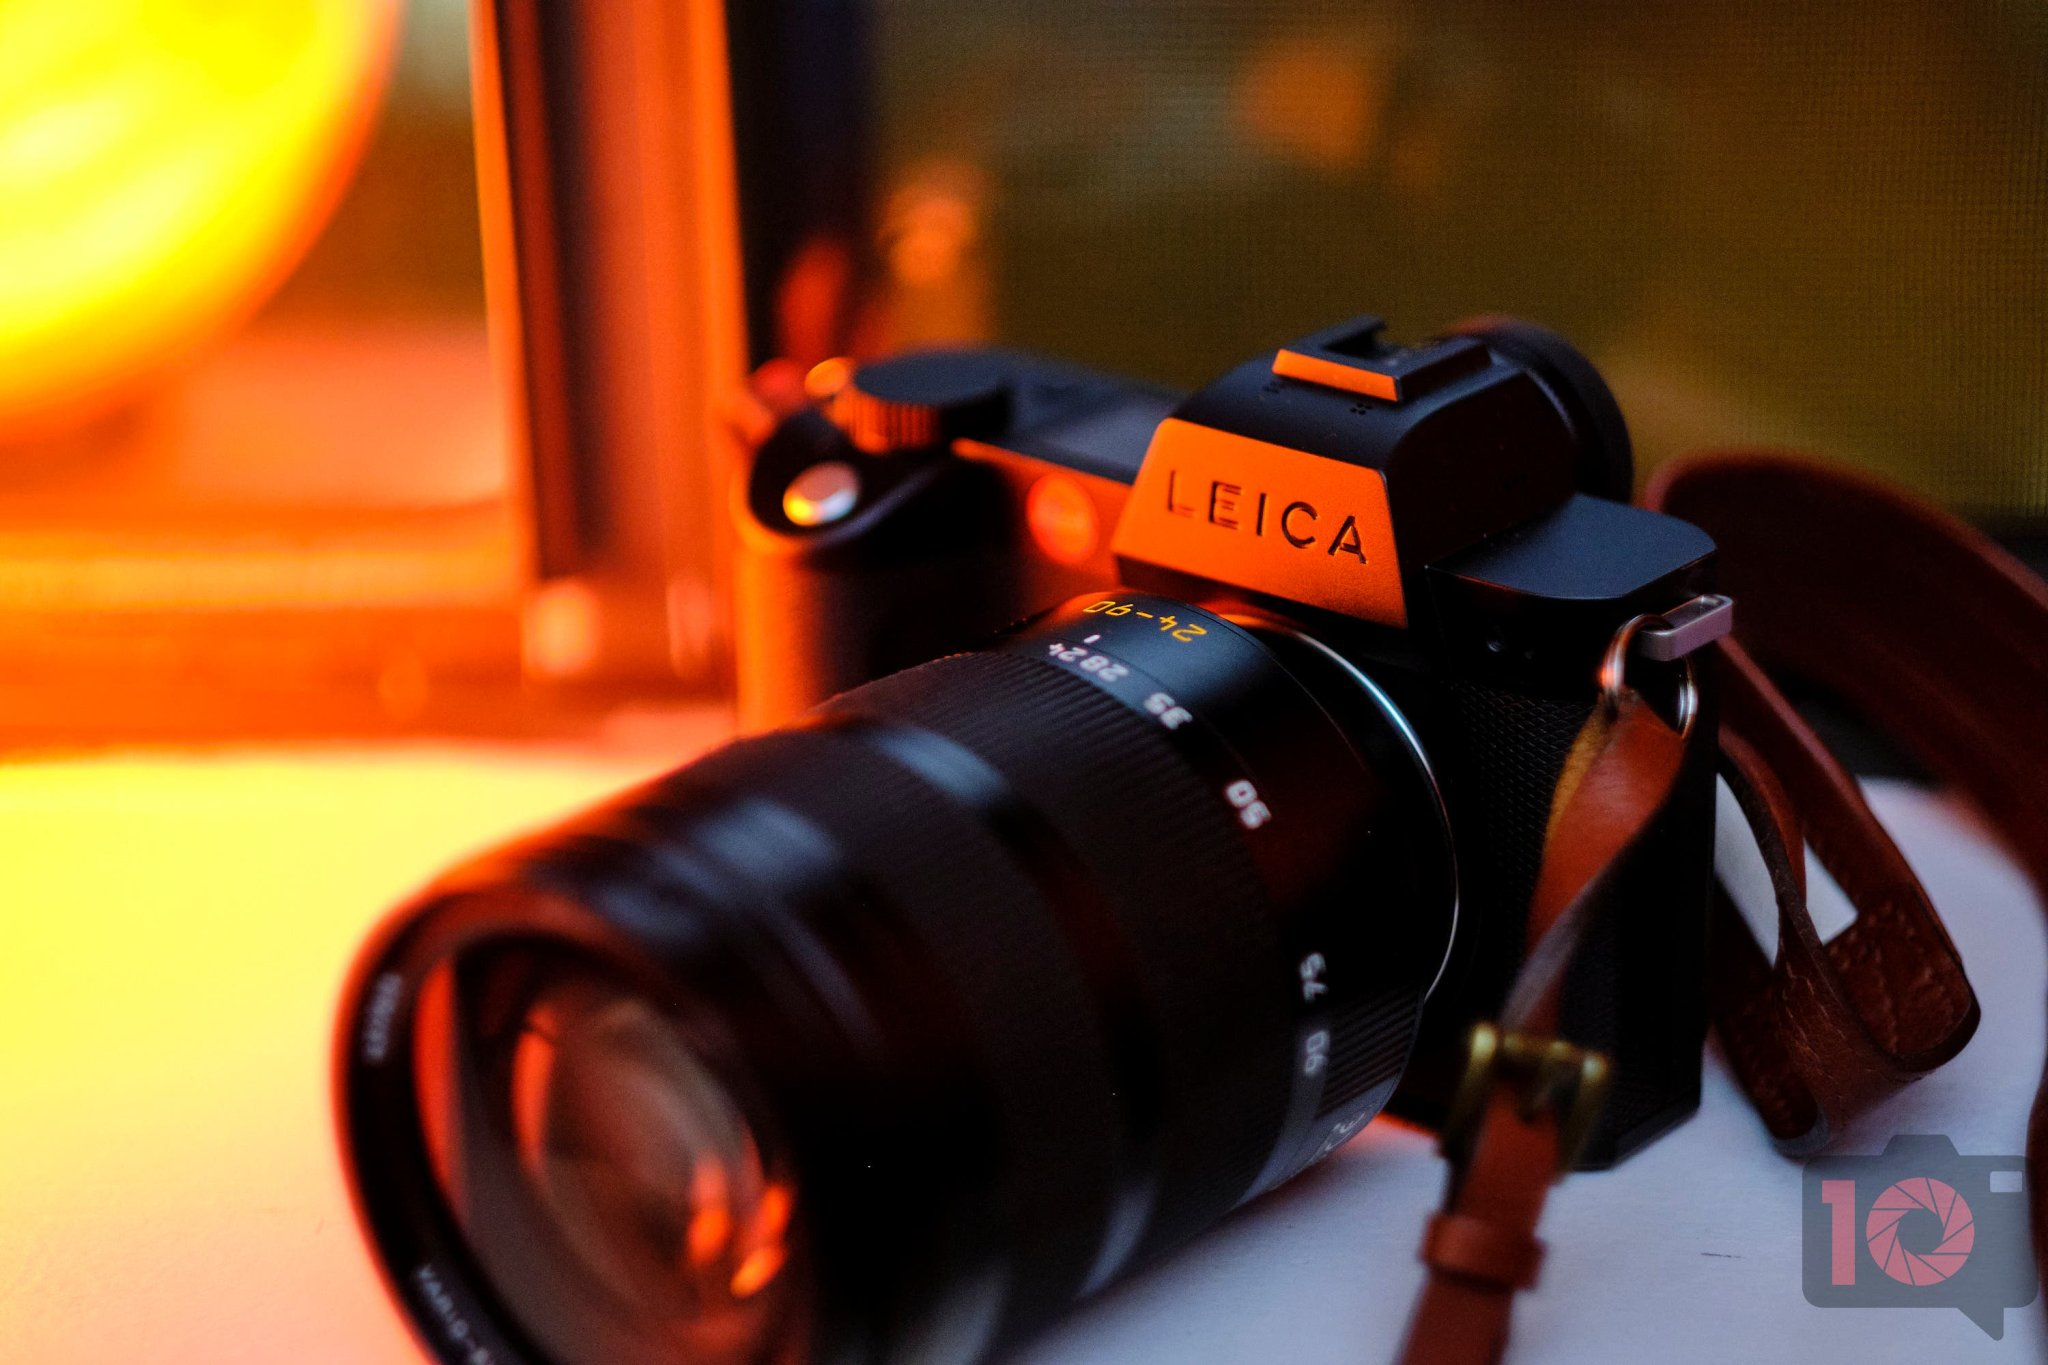 The Most Rugged Camera for a Journalist. Leica SL2s Review